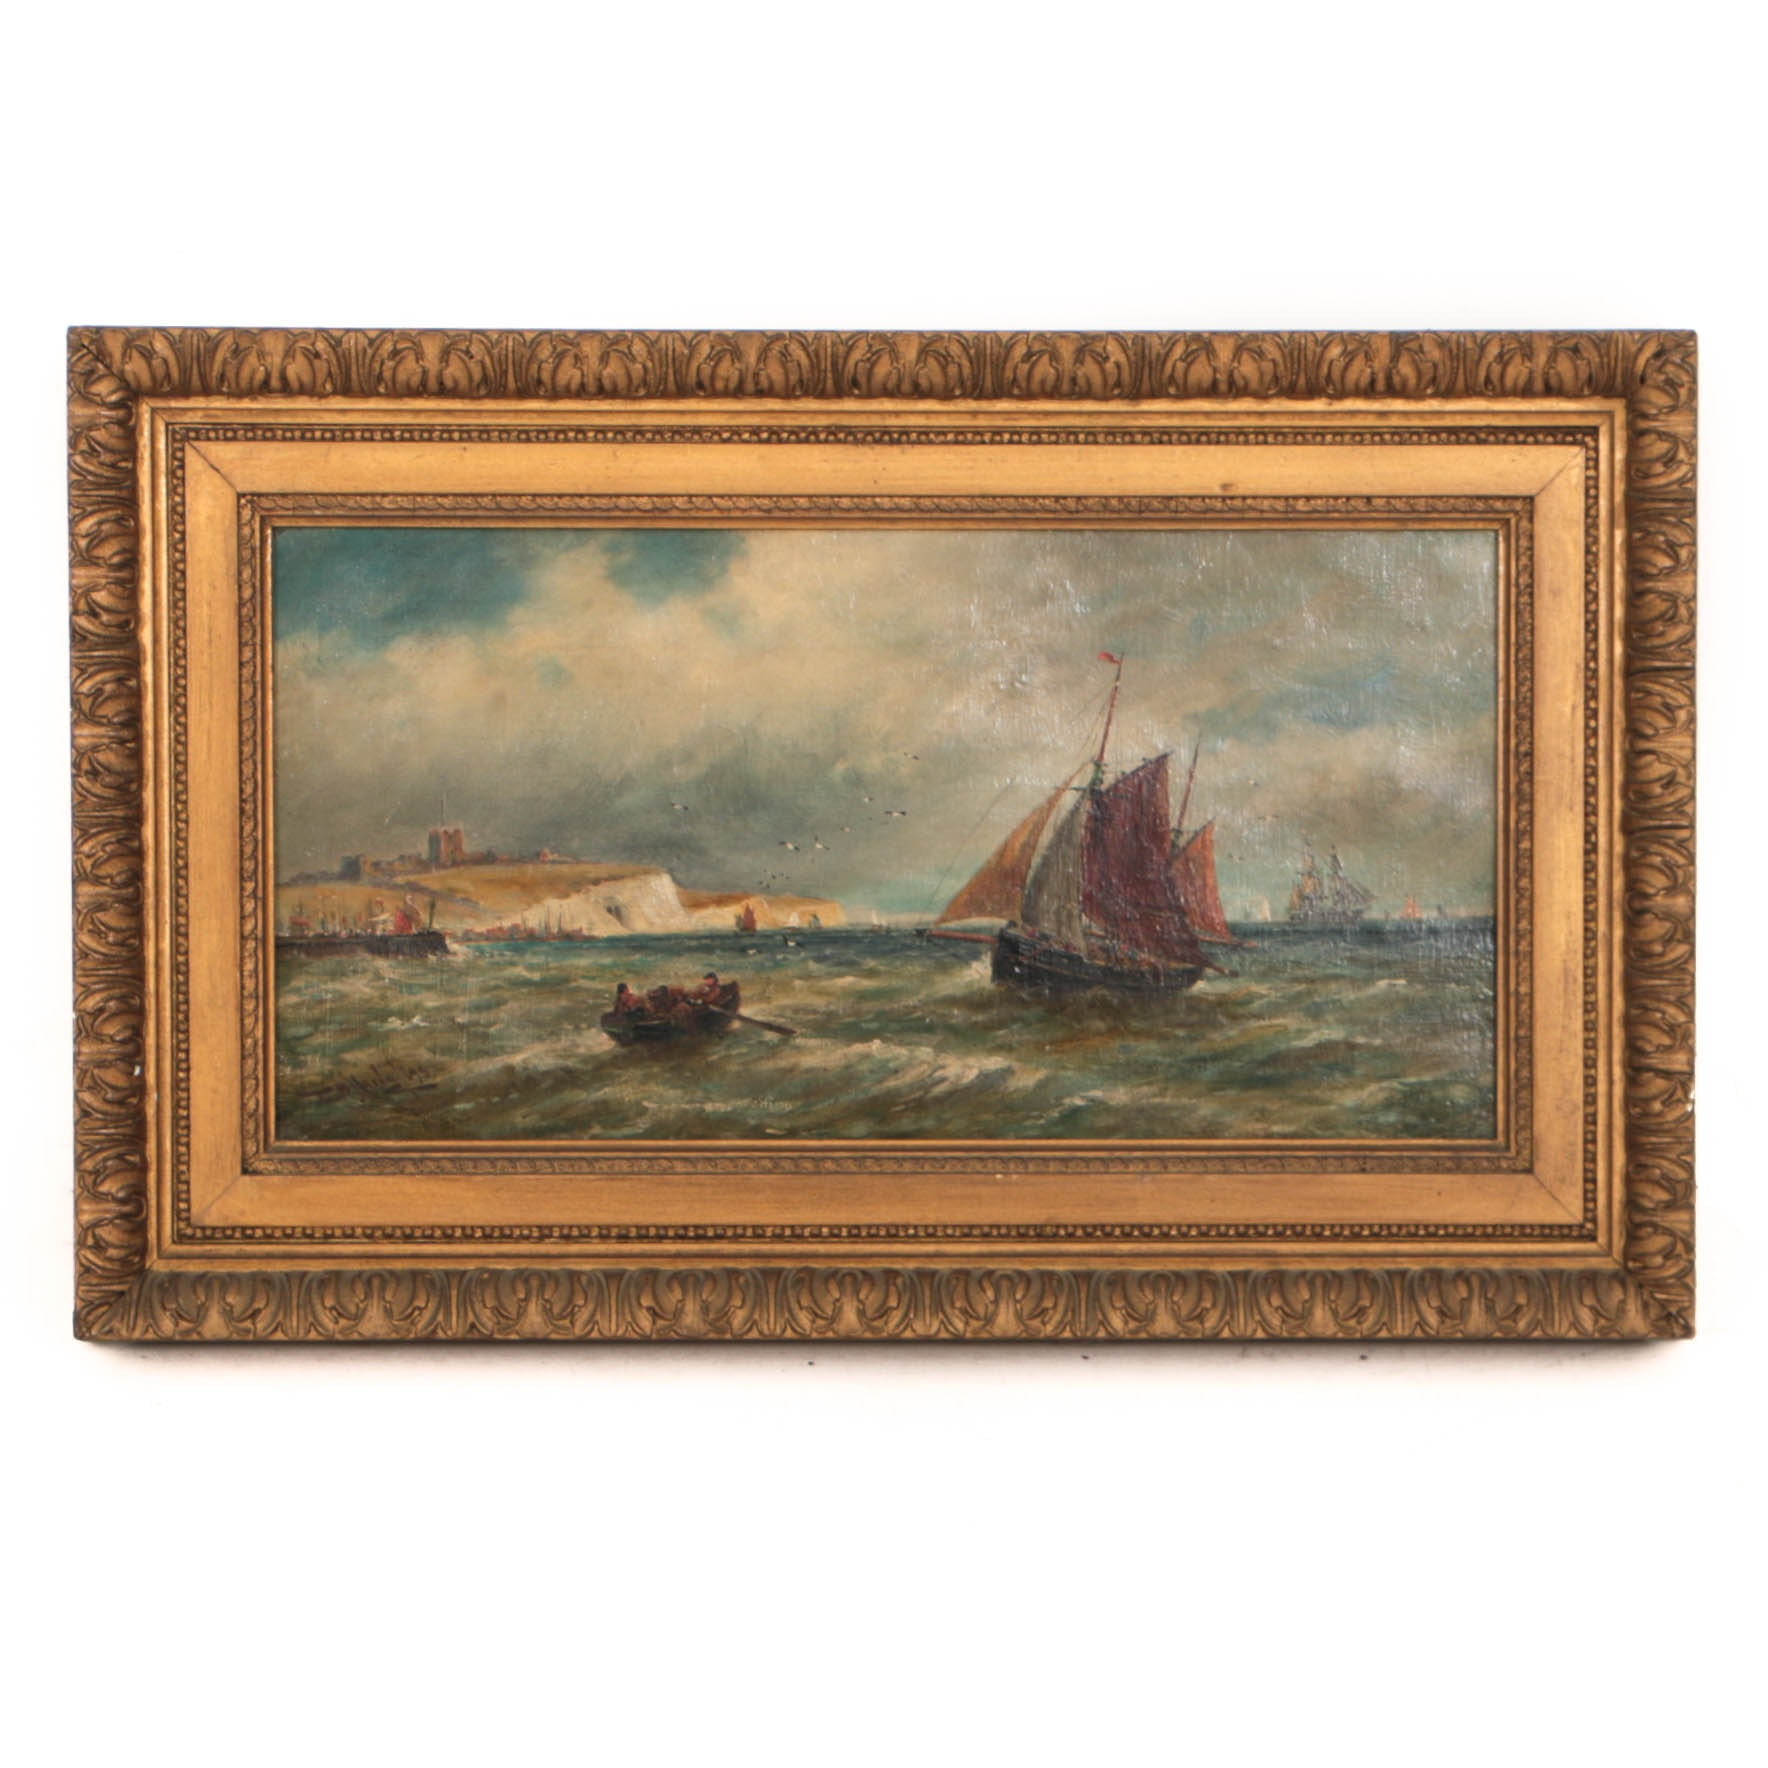 Thomas Bush Hardy 1895 Oil Painting on Canvas Fishing Boats in English Channel